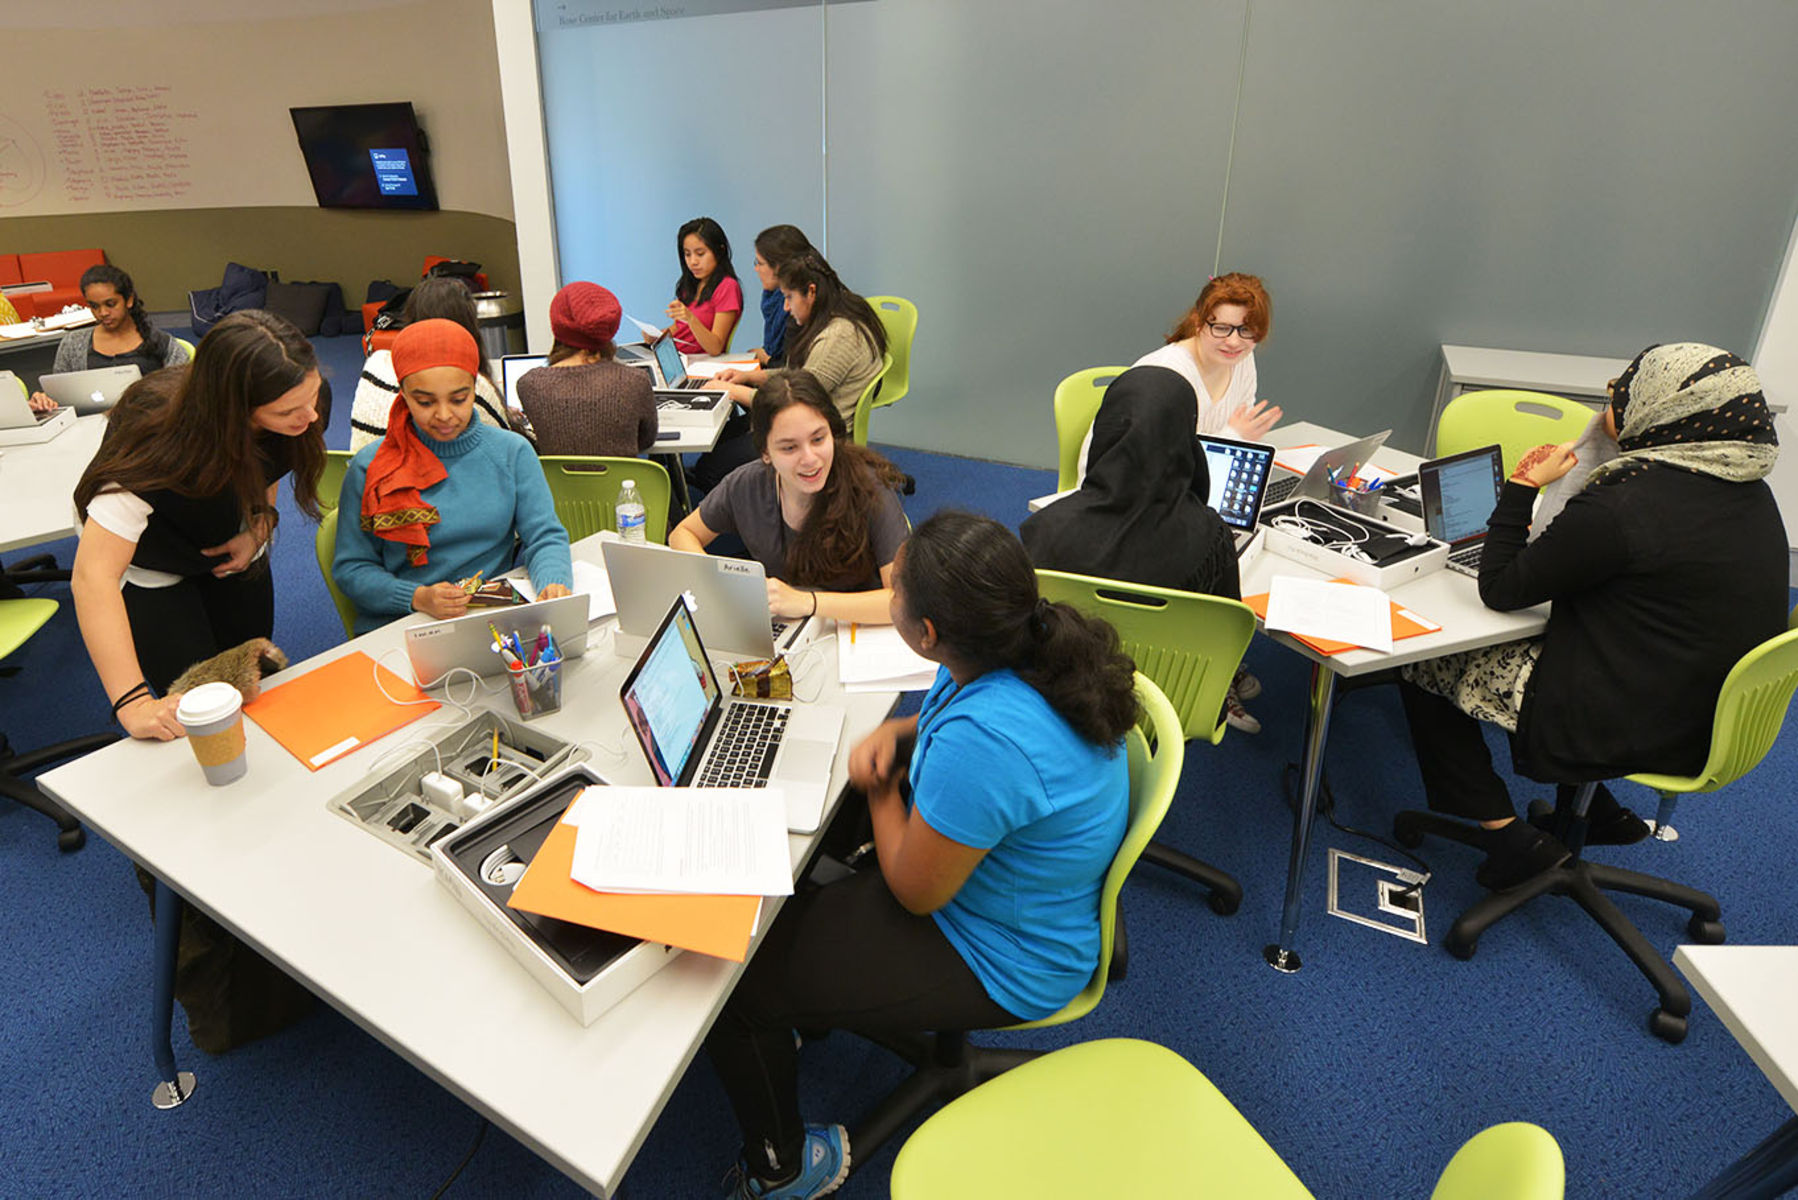 A large group of students gather at several tables with laptops to study and converse.